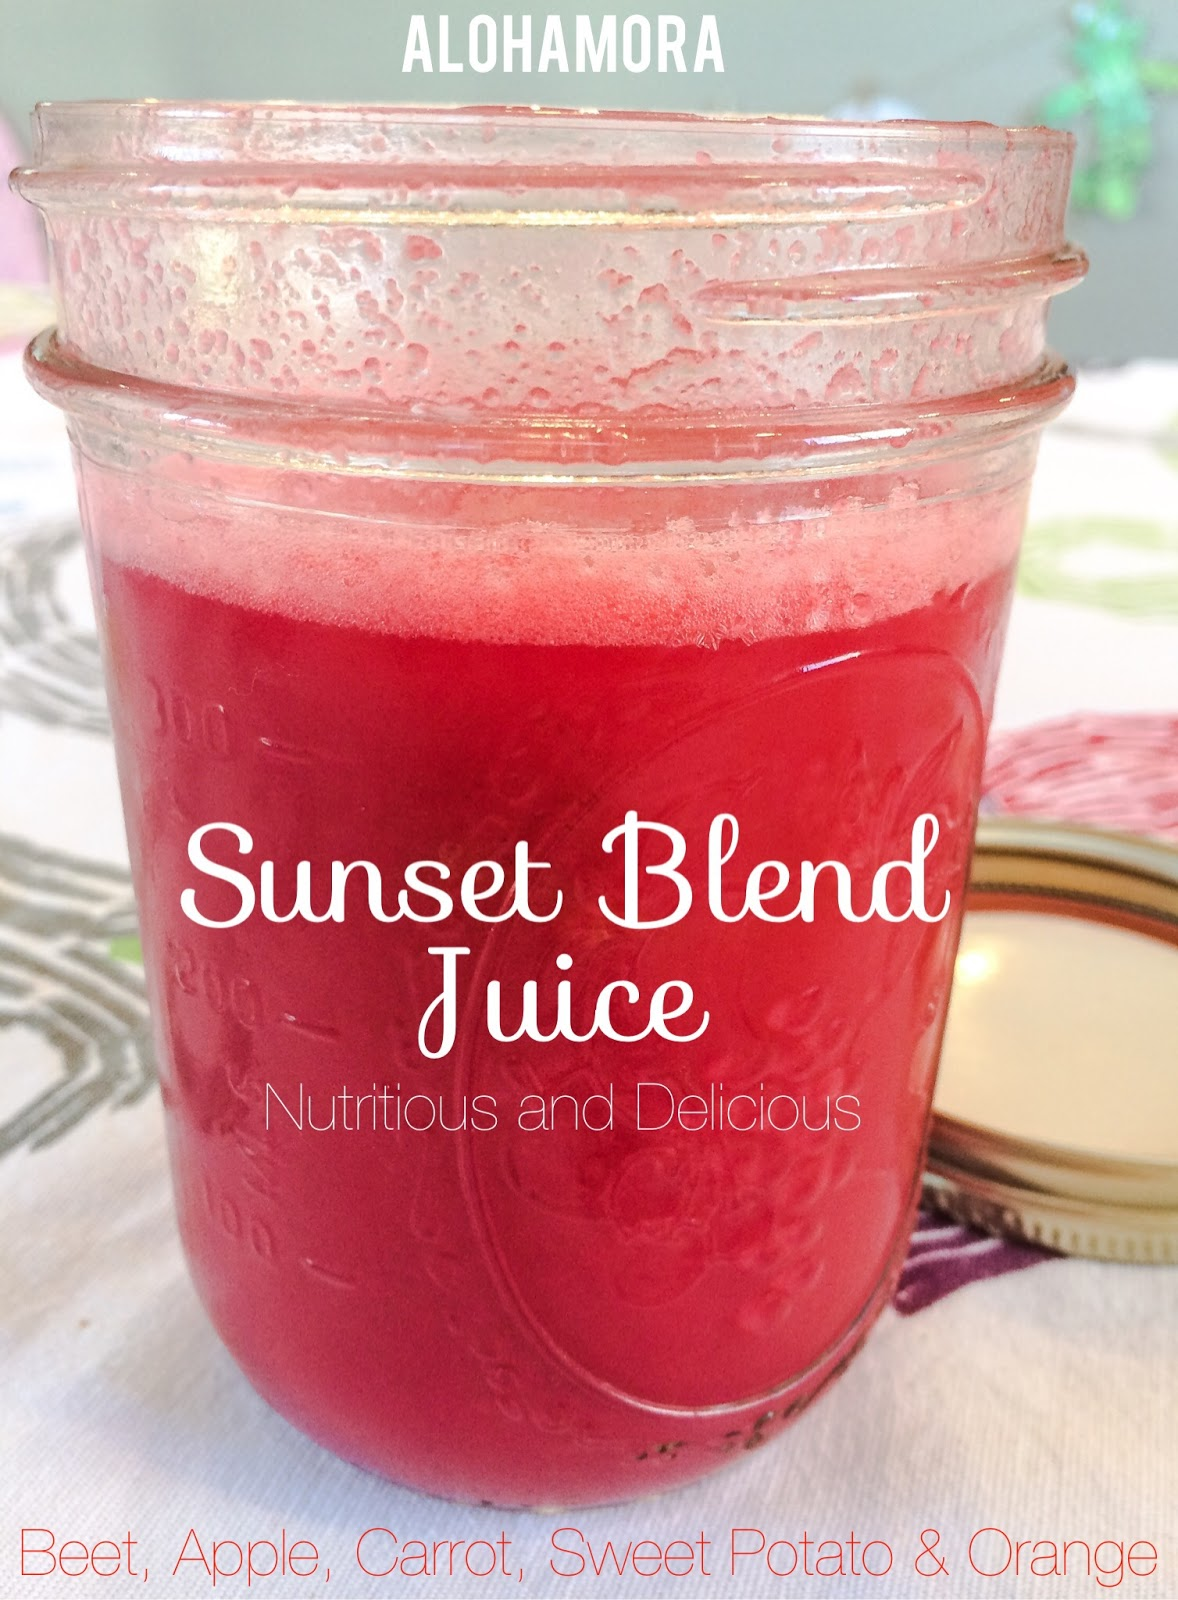 Sunset Blend Juice for those that are into juicing.  This healthy, nutritious, diet friendly and delicious juice is full of beets, carrots, apples, oranges, and sweet potato.  It's the one of the best juice concoctions out there.  Yum! Alohamora Open a Book http://www.alohamoraopenabook.blogspot.com/ gluten free, egg free, nut free, dairy free